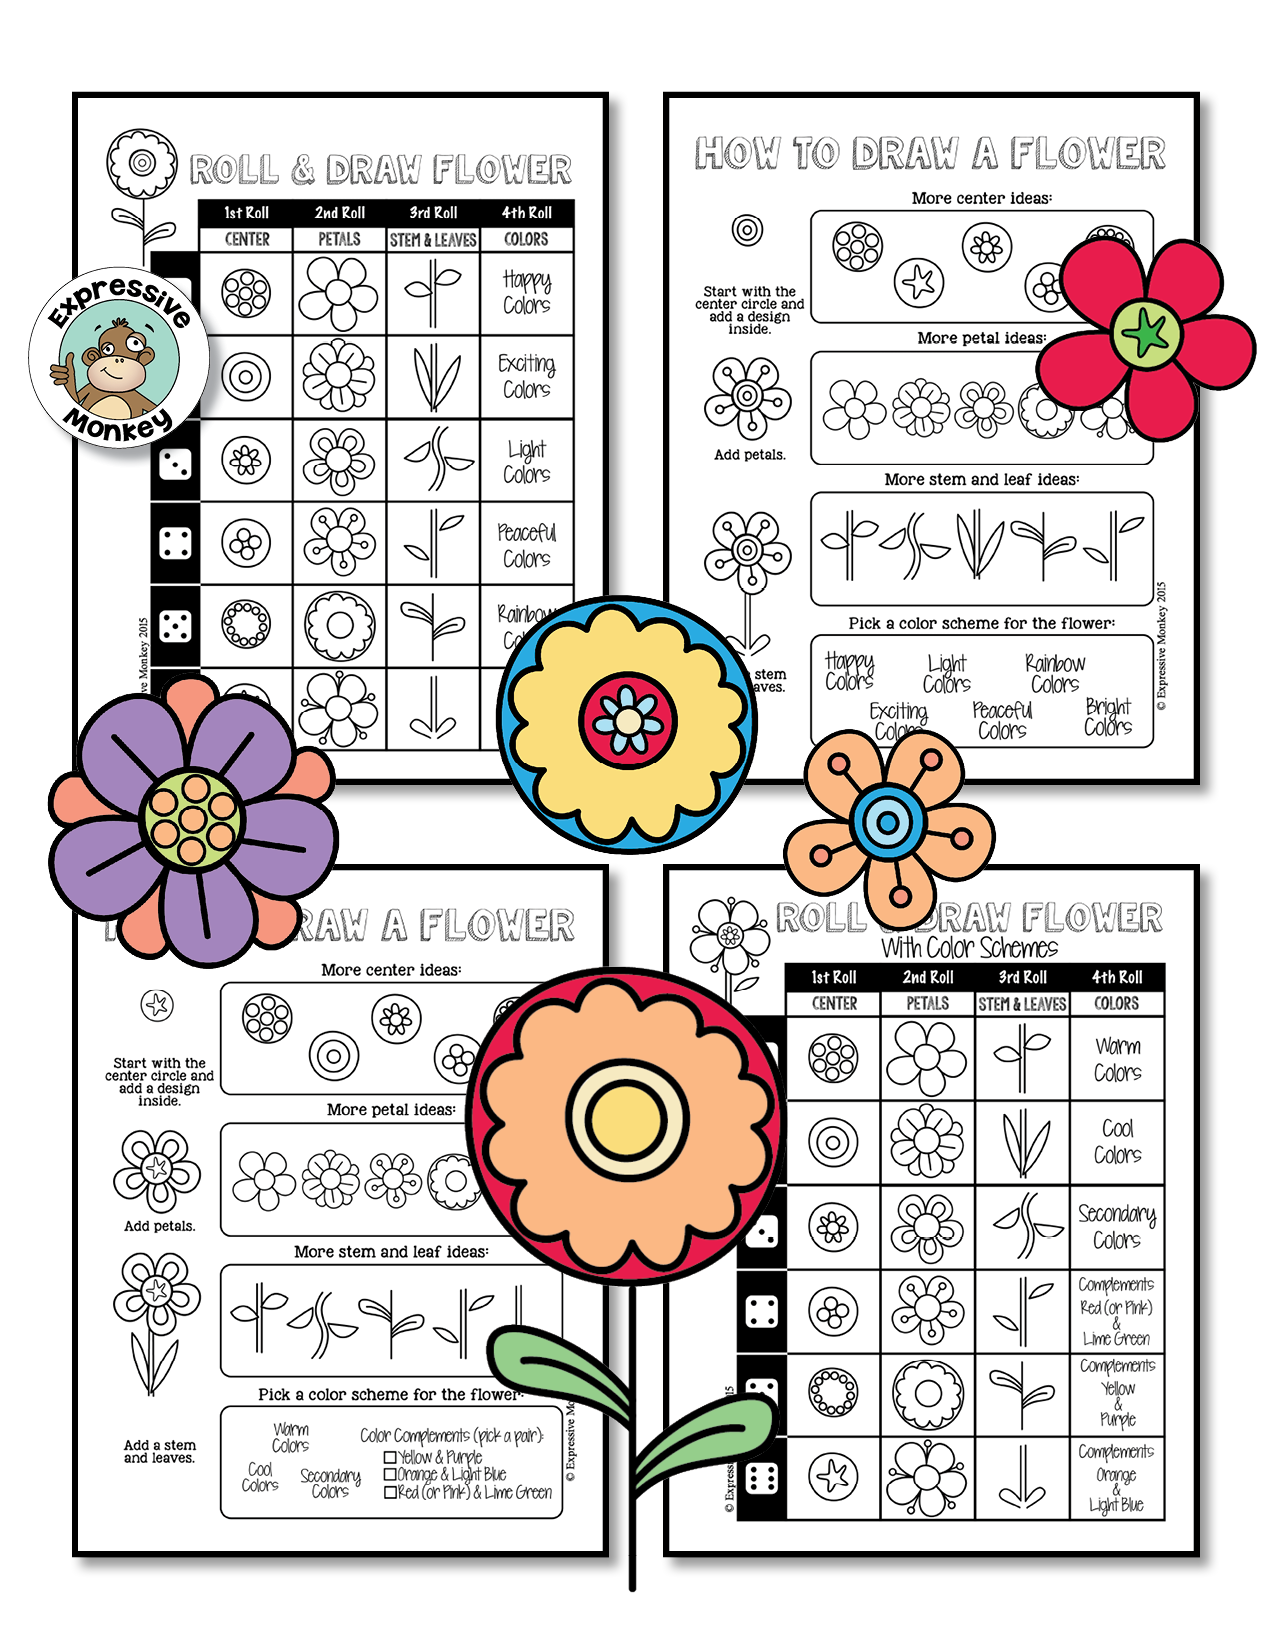 Summer drawing fun from expressive monkey teach color Teach me how to draw a flower